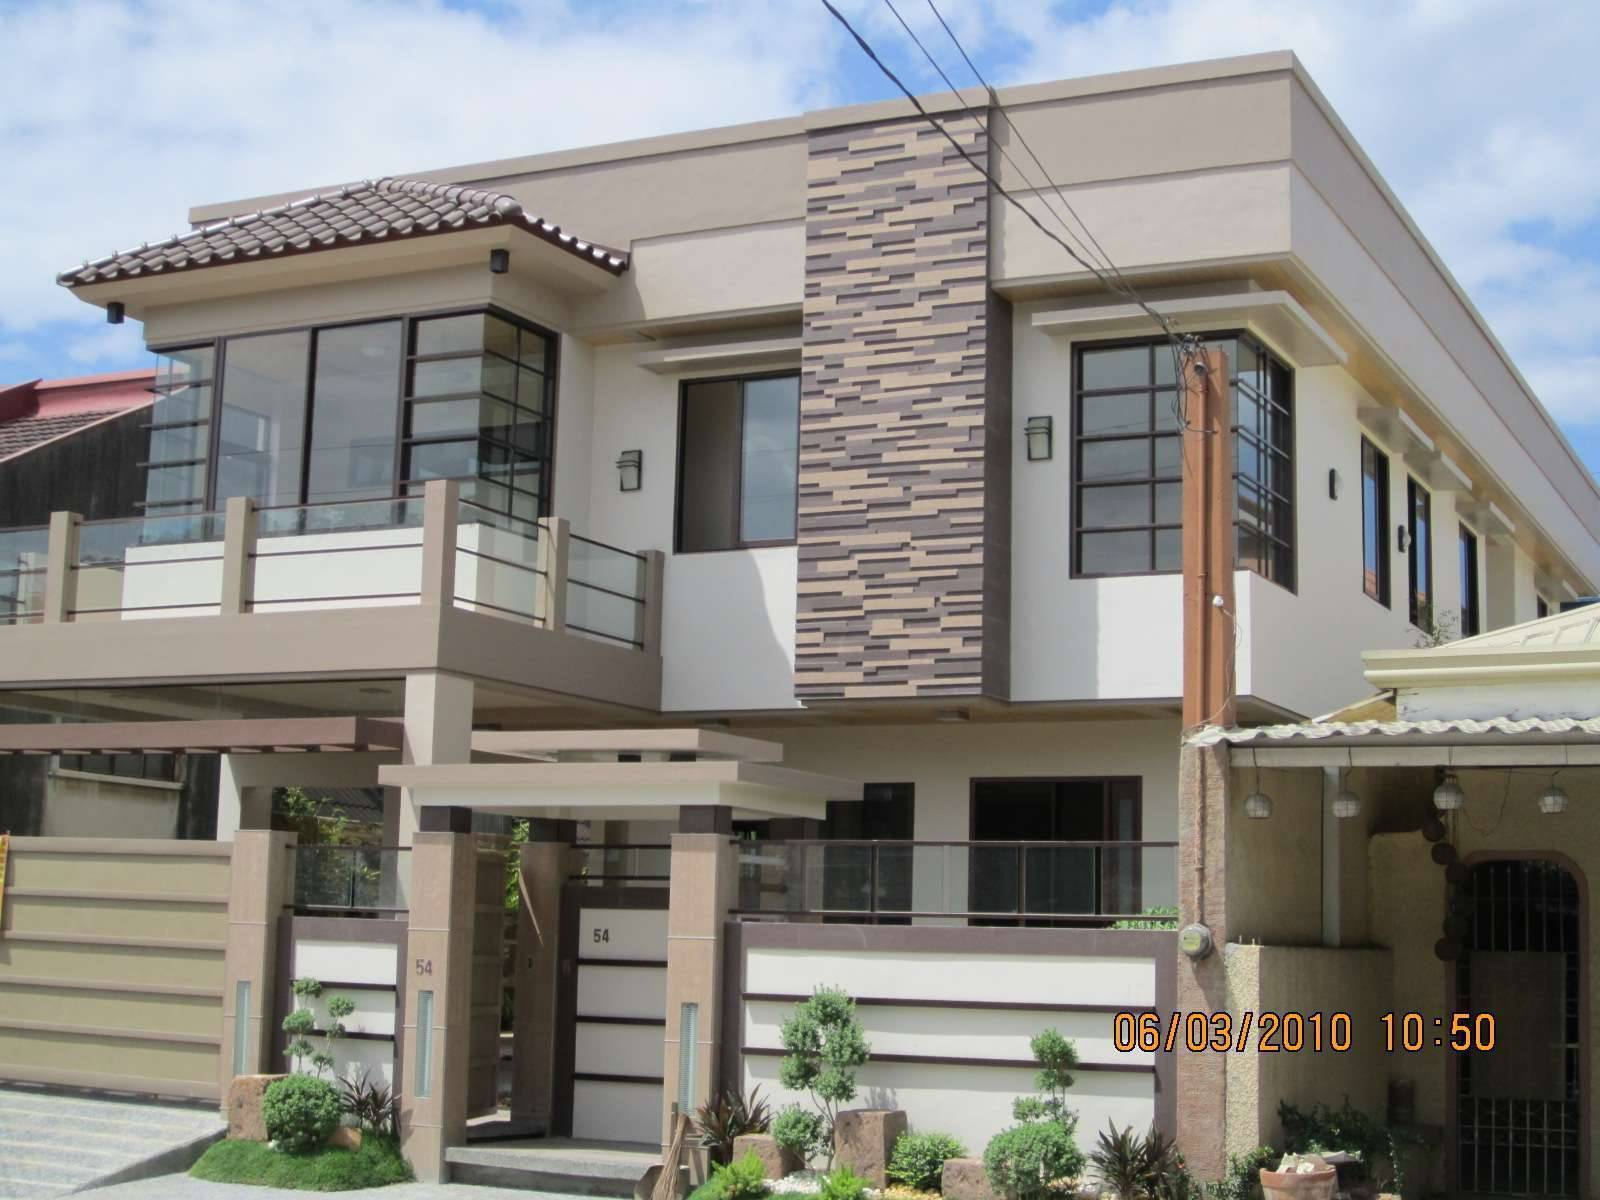 Modern house in the philippines pictures House interior